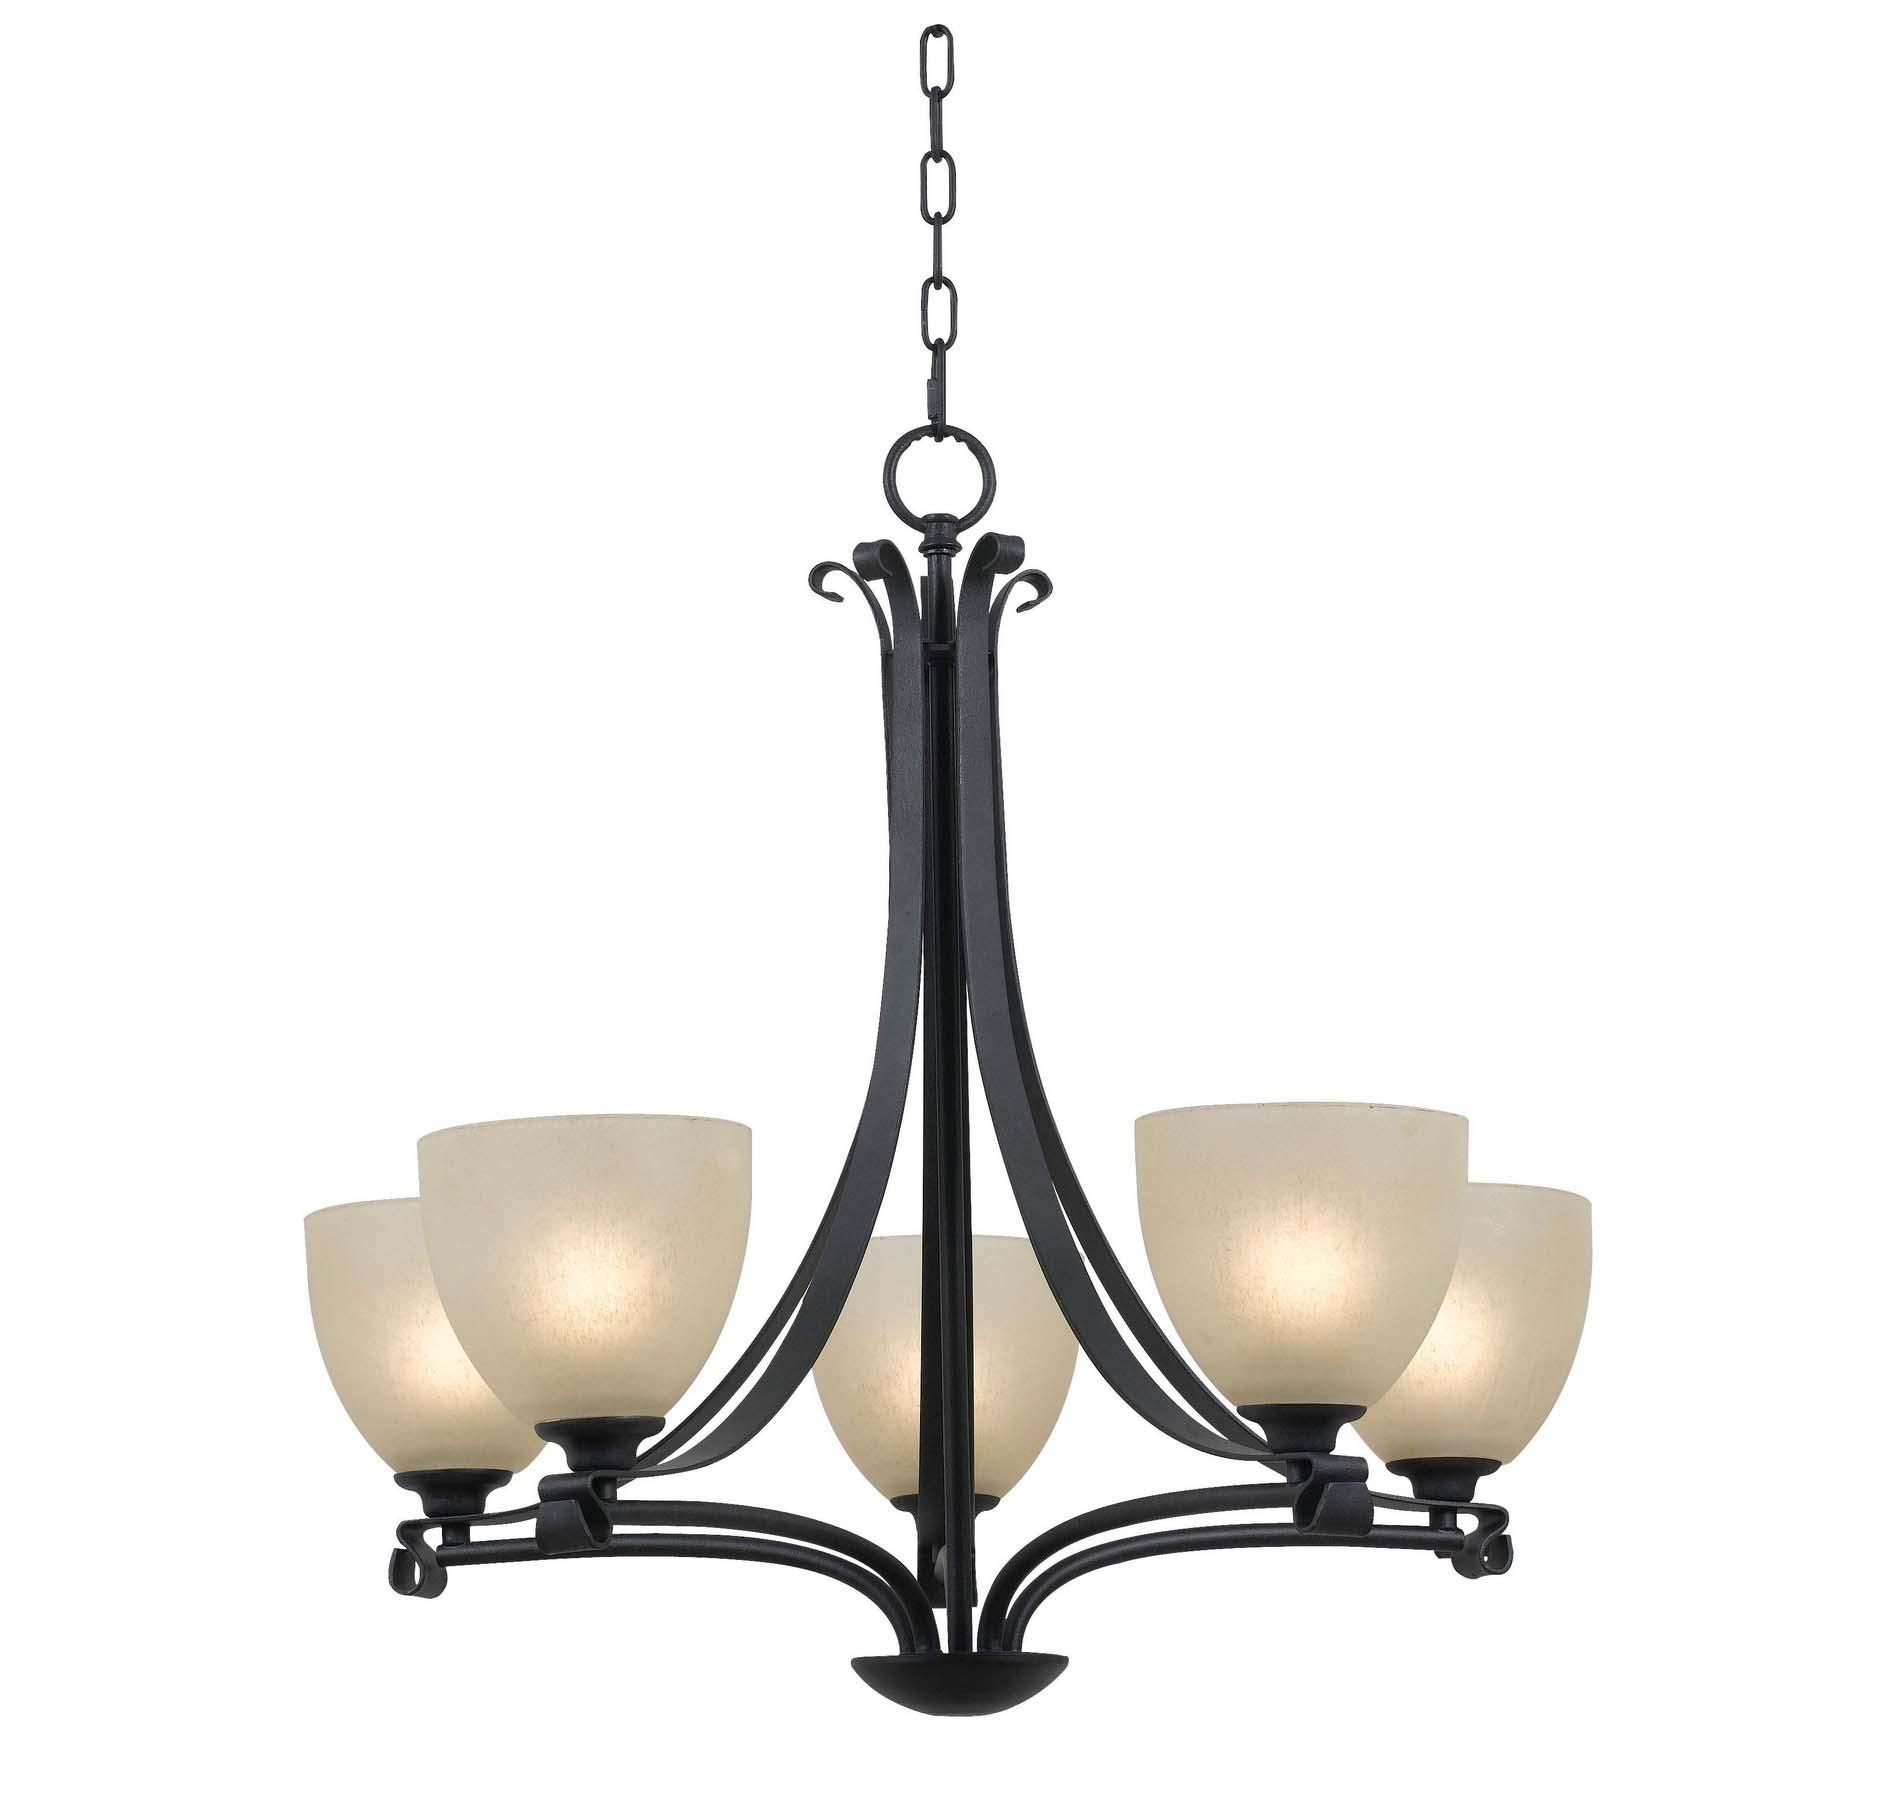 Kenroy Home Willoughby 5 Light Chandelier in Forged Graphite in